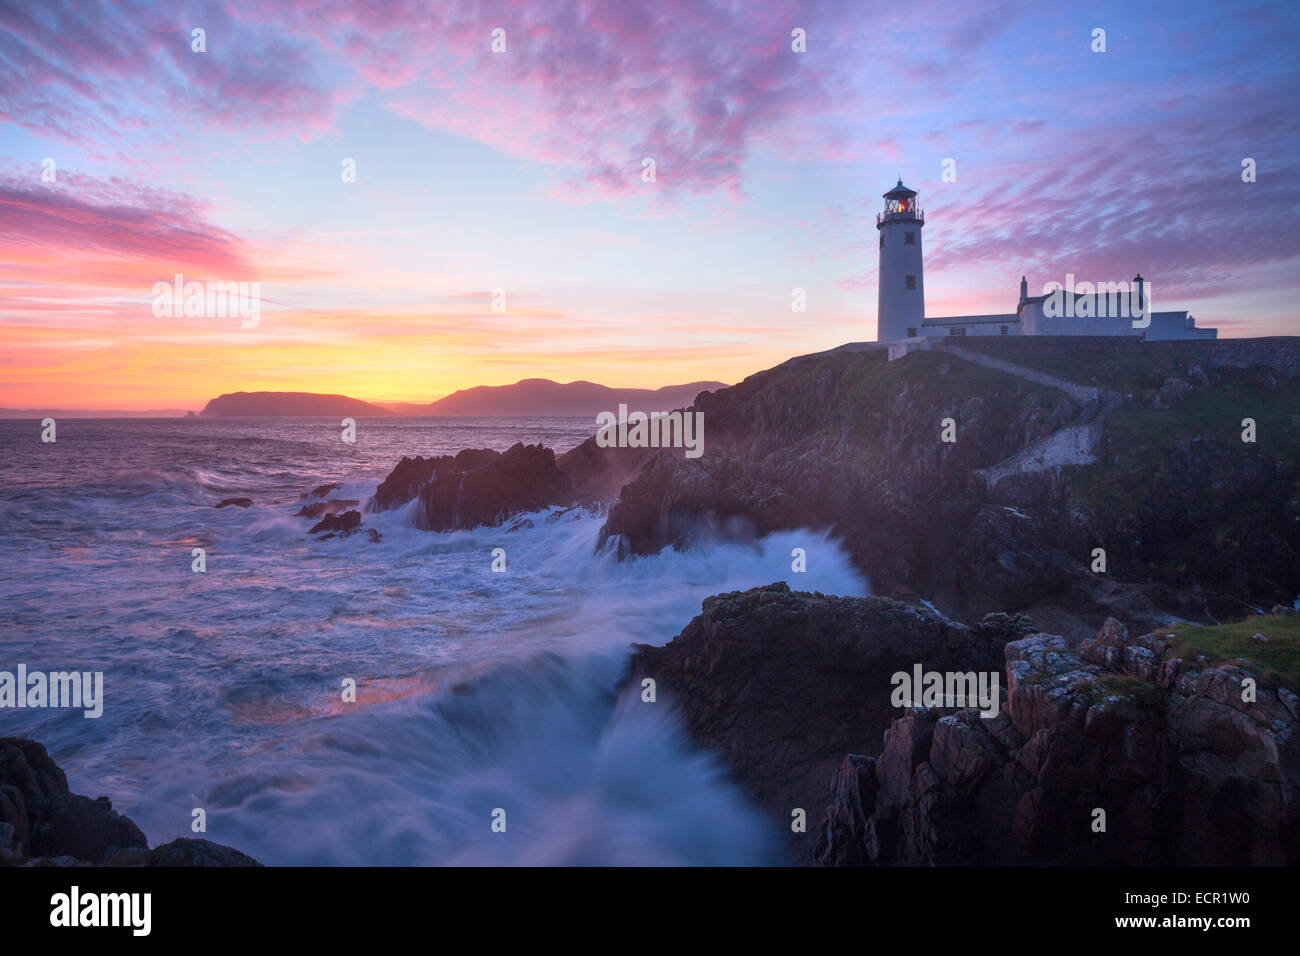 Sunrise over Fanad Head Lighthouse, Fanad Head, County Donegal, Ireland. - Stock Image